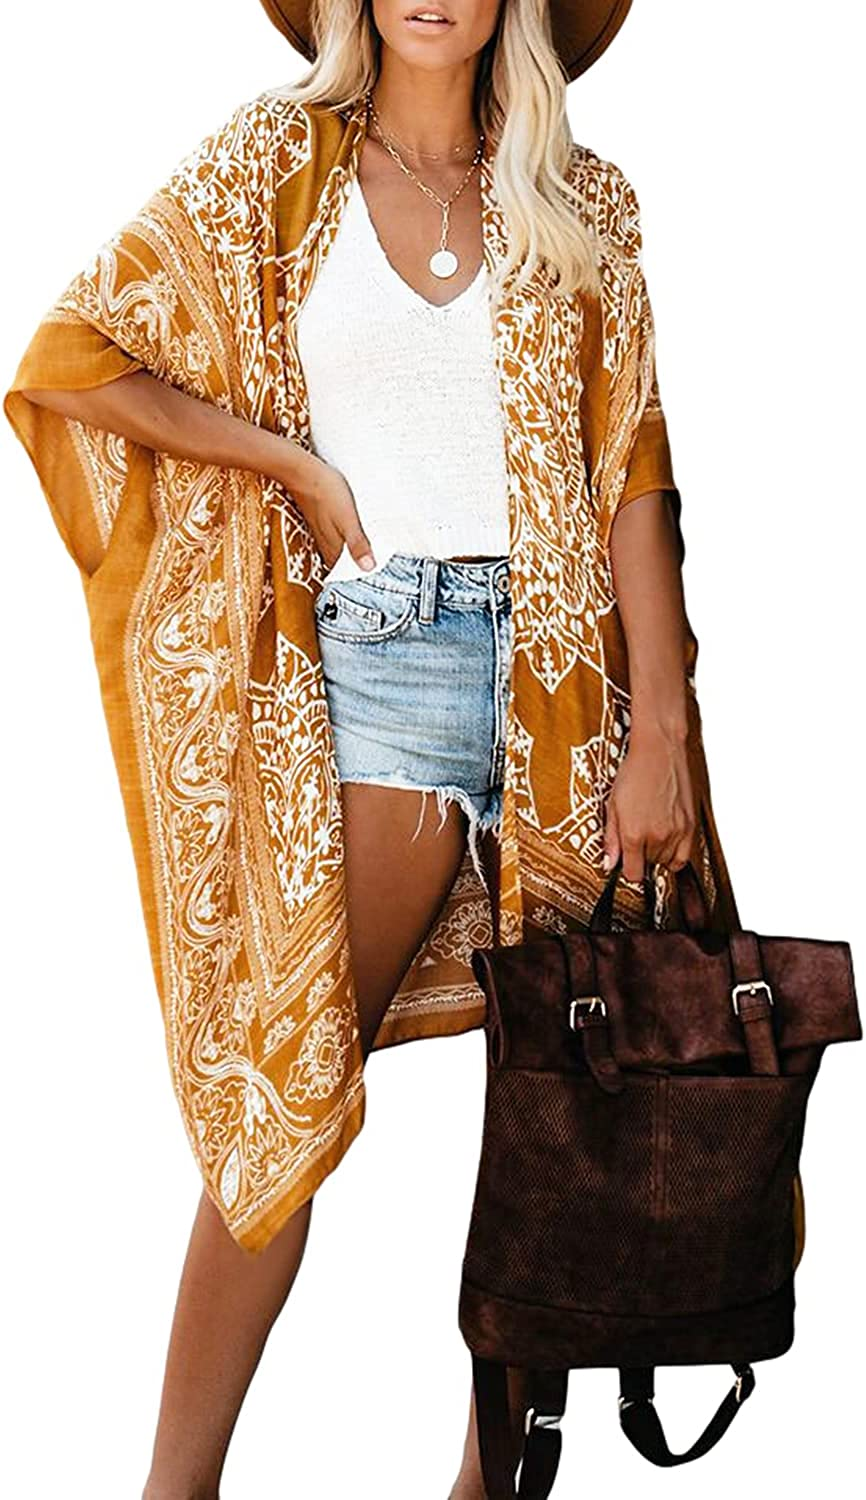 MayBuy Women's Floral Kimonos Boho Summer Cardigans Swimsuit Cover Ups for Beach Vacation